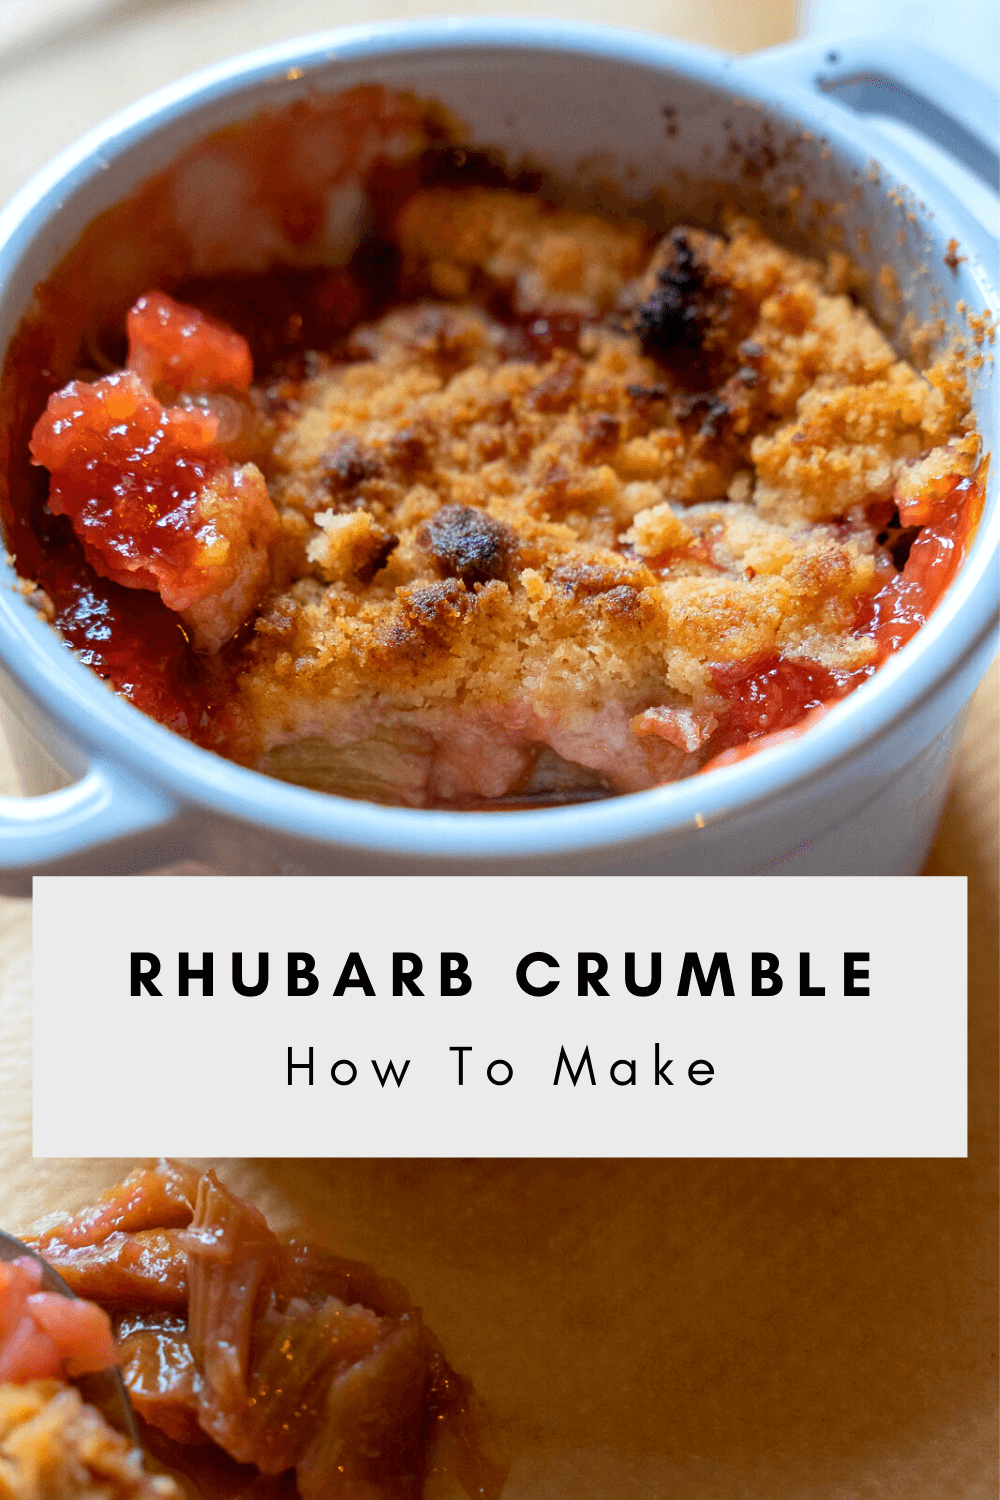 How To Make Rhubarb Crumble